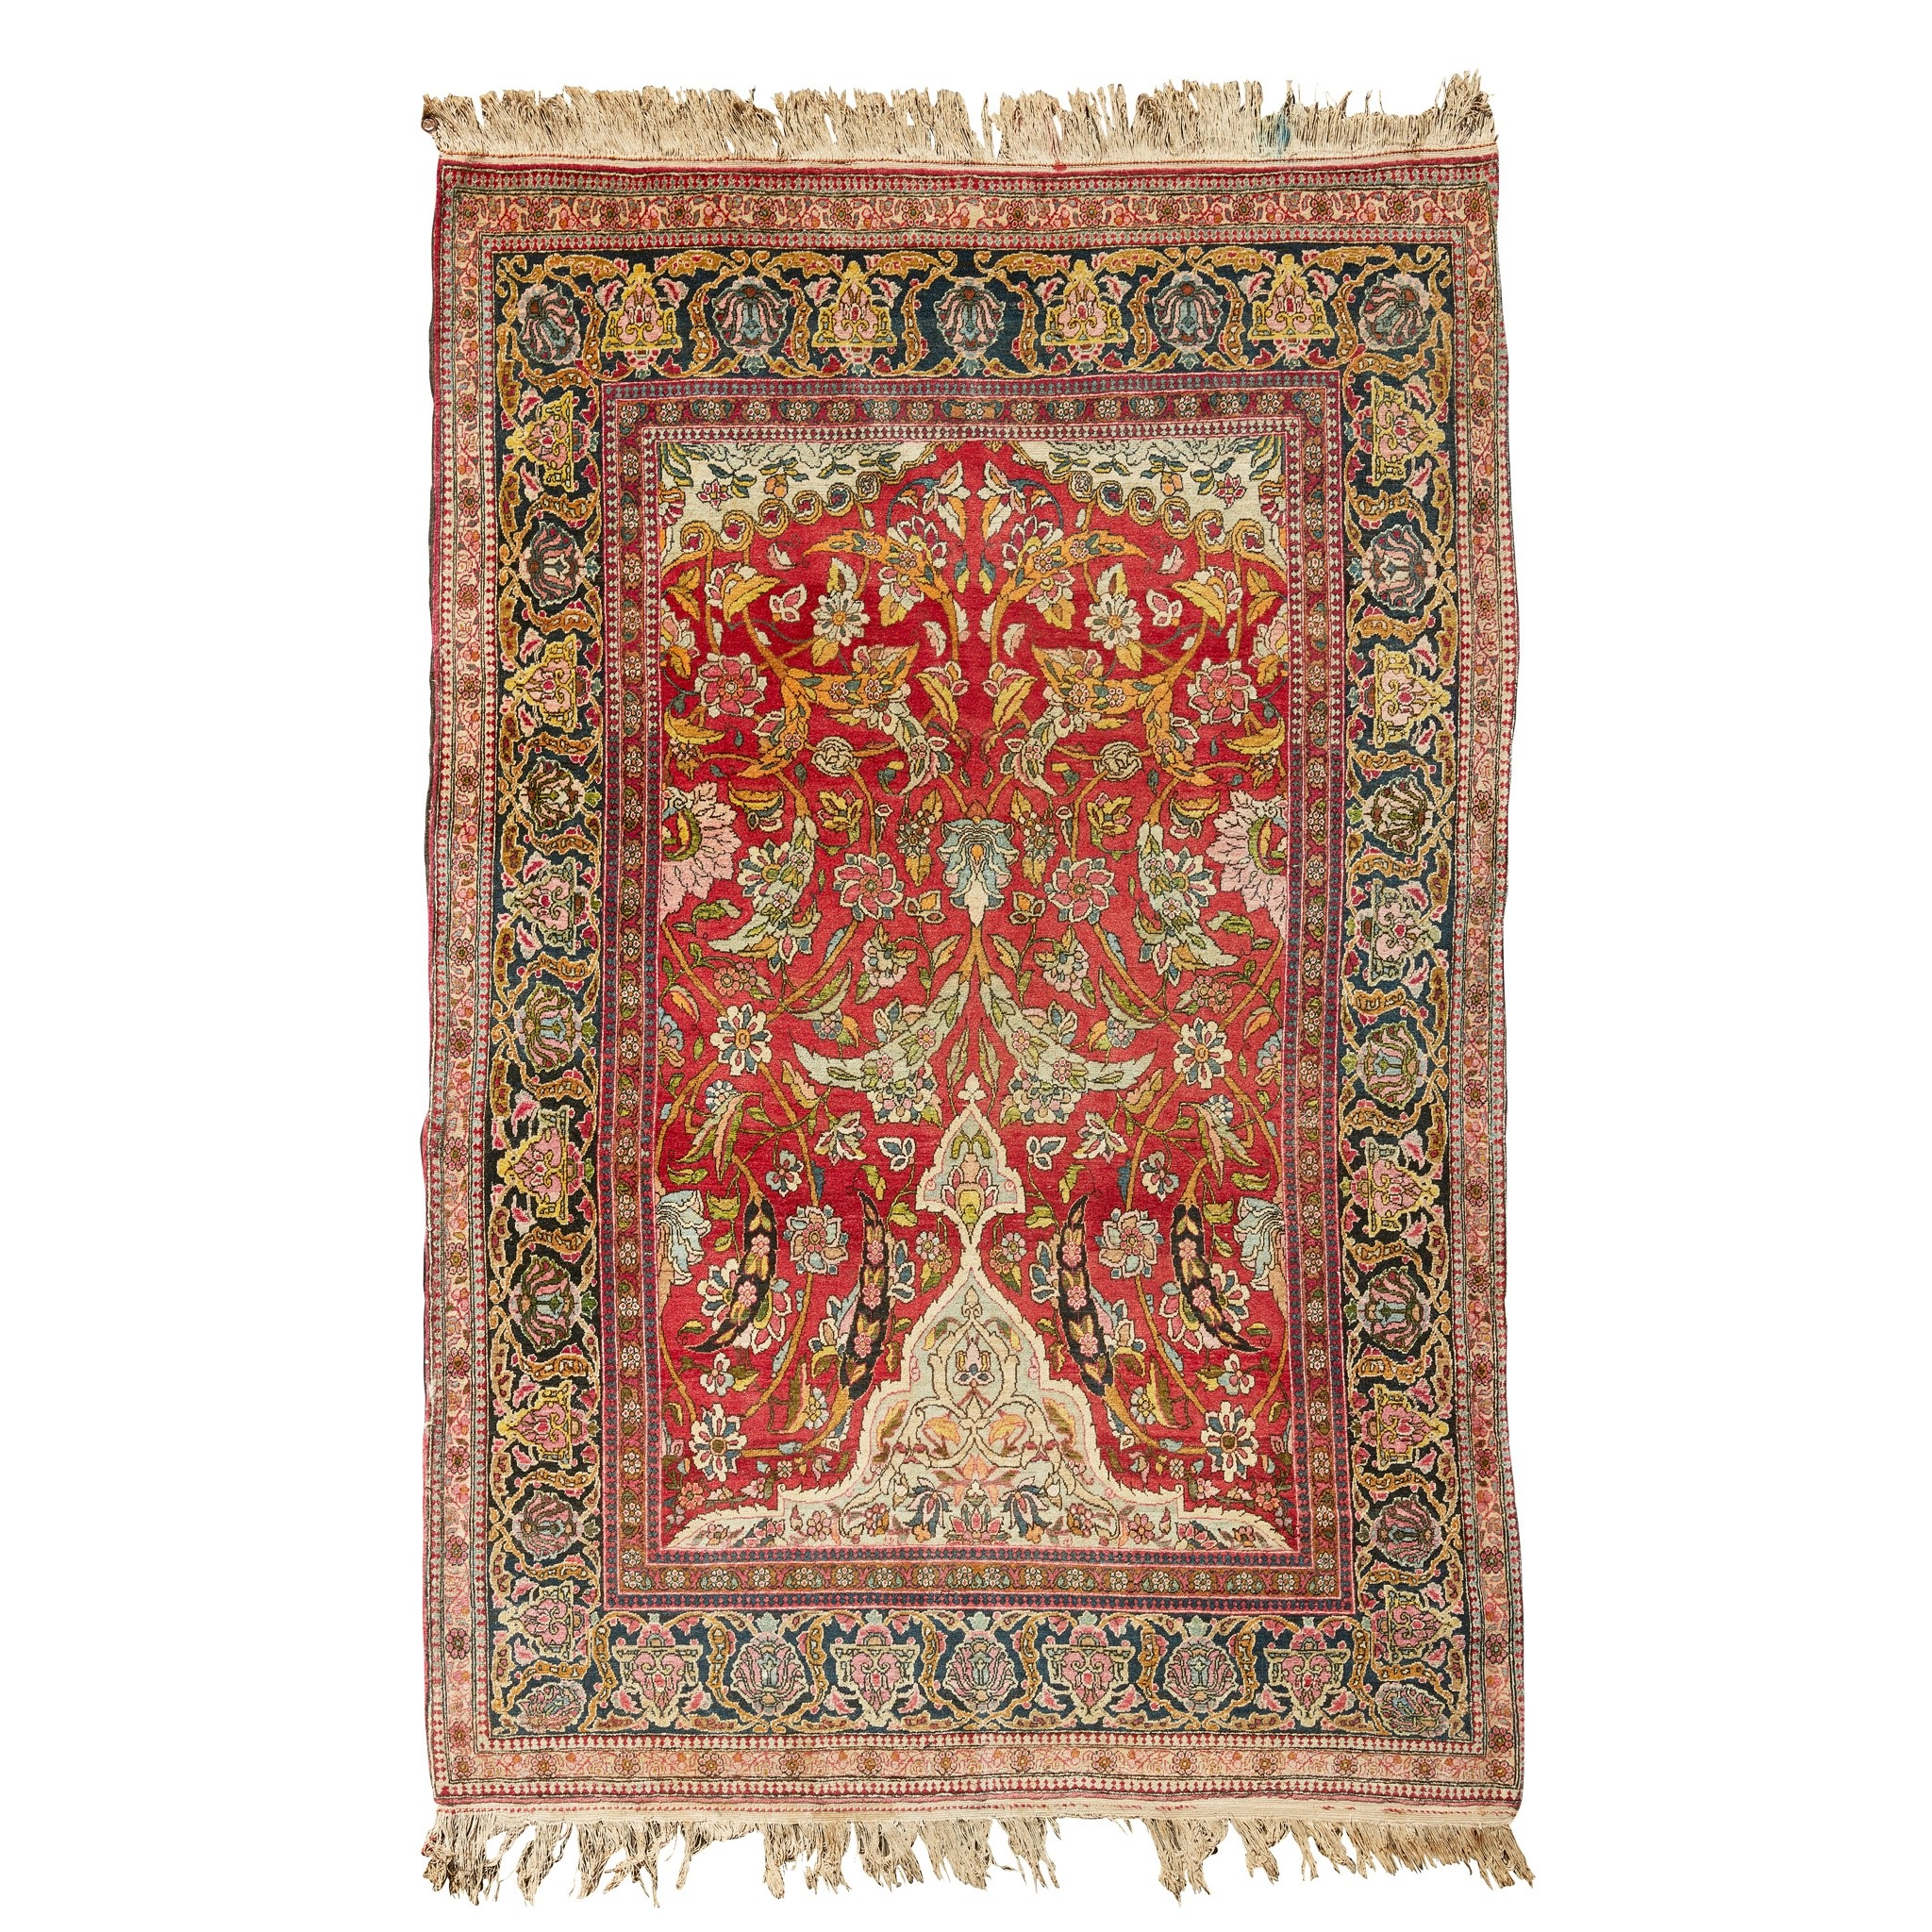 KIRMAN PRAYER RUG CENTRAL PERSIA, LATE 19TH/EARLY 20TH CENTURY